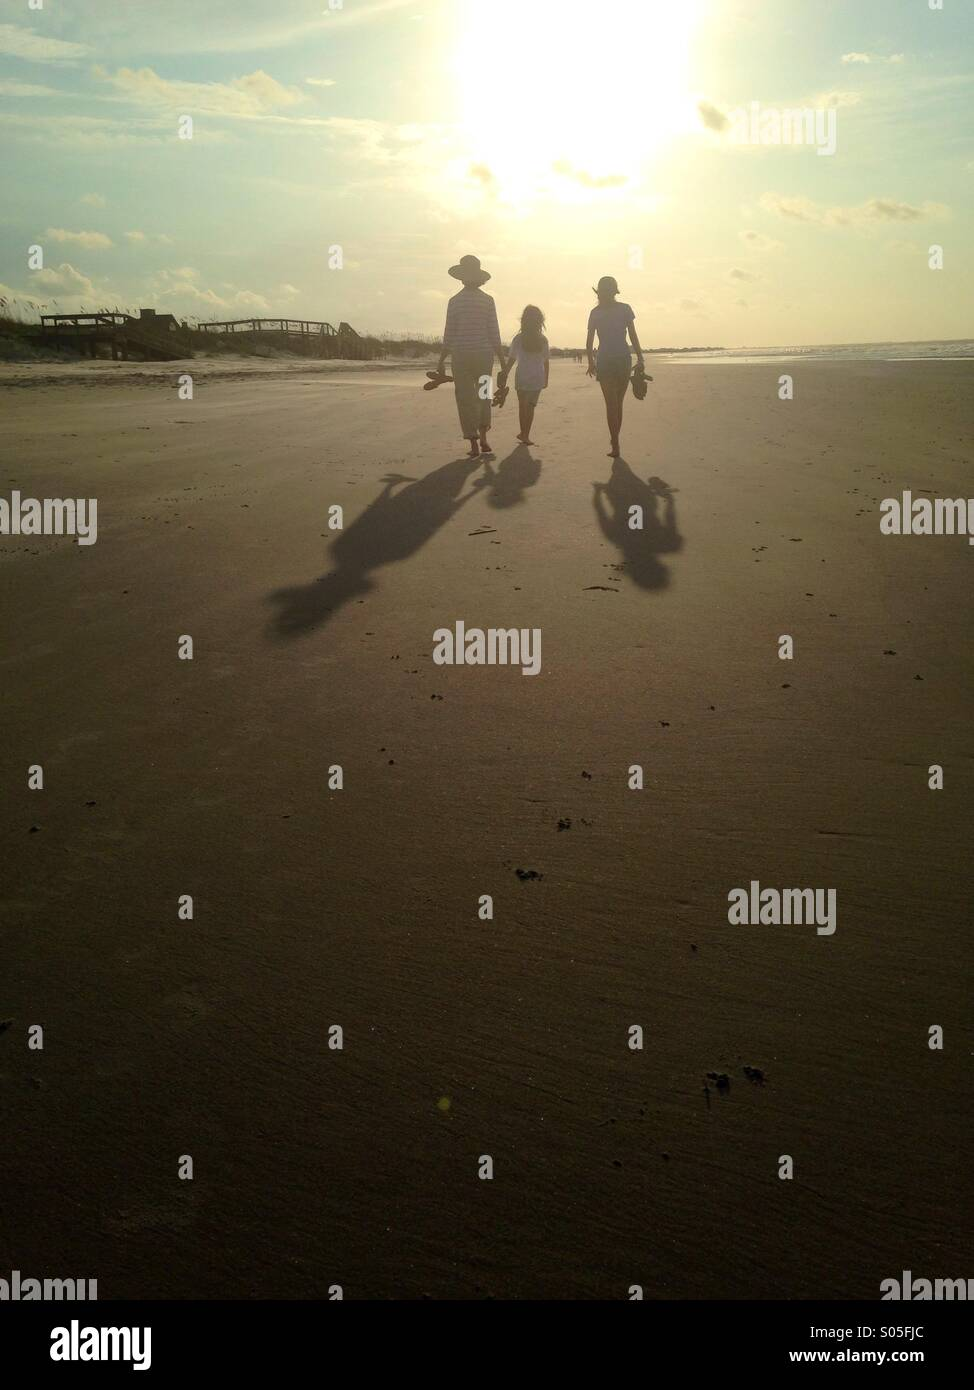 The silhouettes of three people walk along the beach in morning light. - Stock Image